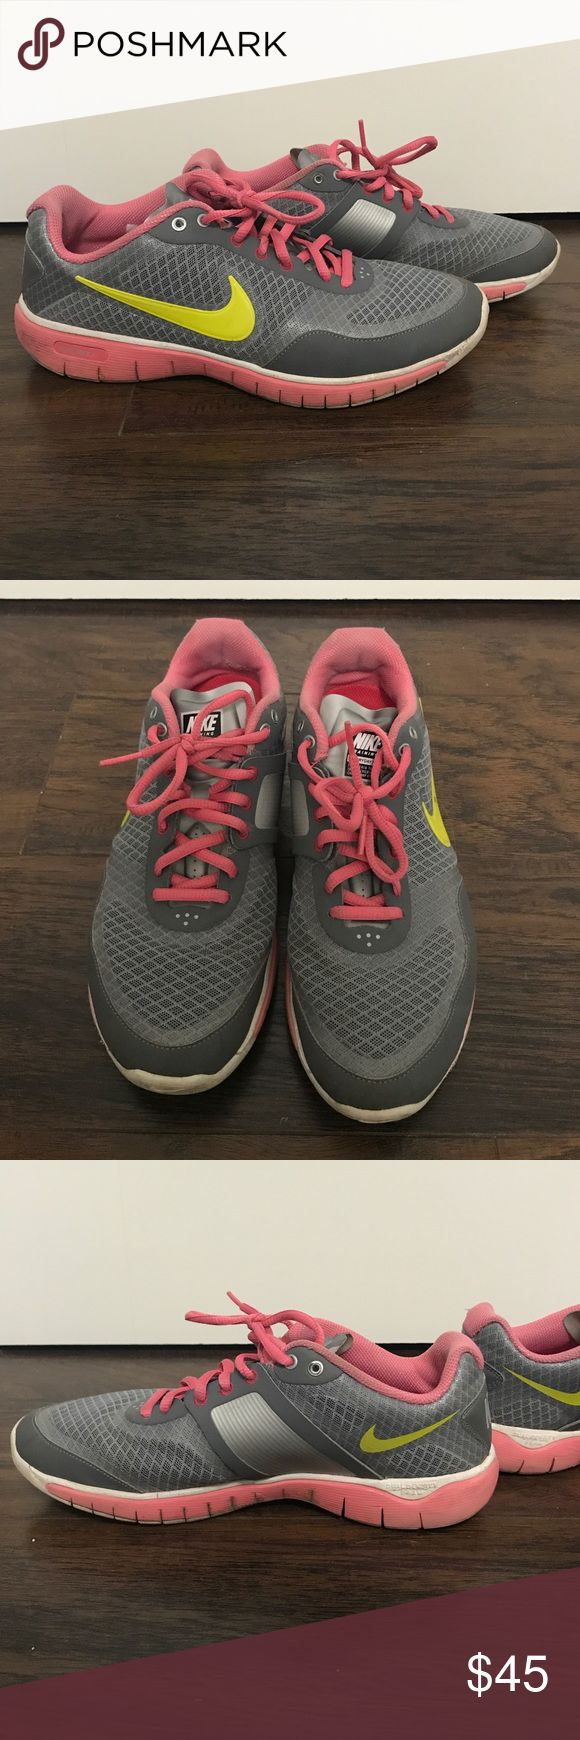 Nike Free XT Cross Training Shoe Nike Free XT Everyday Fit+ Womens Cross Training Shoes Mesh Rubber Sole 100% Authentic Nike Product True to Fit Size Classic Look. Worn but still in great condition. Nike Shoes Athletic Shoes